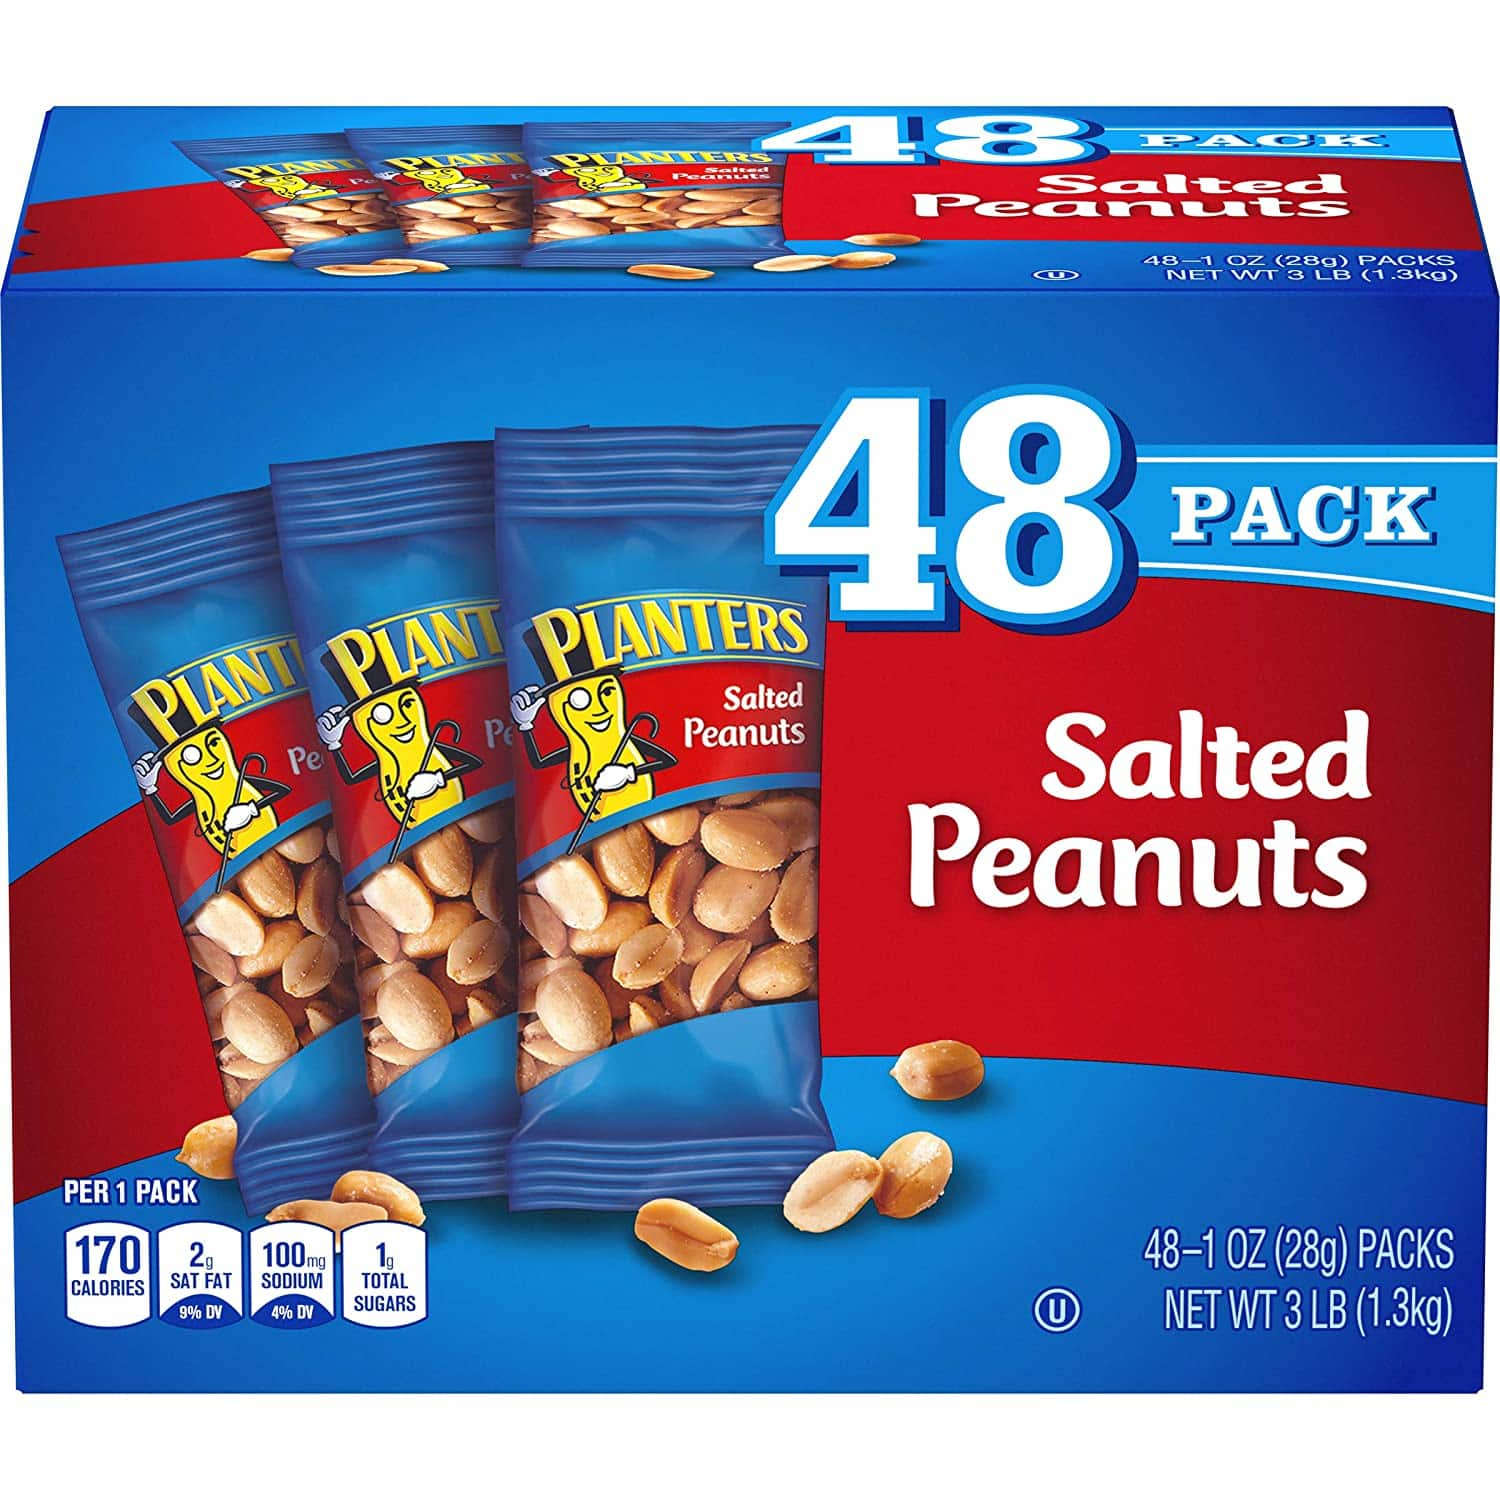 48 Count of 1oz Planters Salted Peanuts at Amazon for $7.11 (5% S&S) or $6.36 15% S&S)